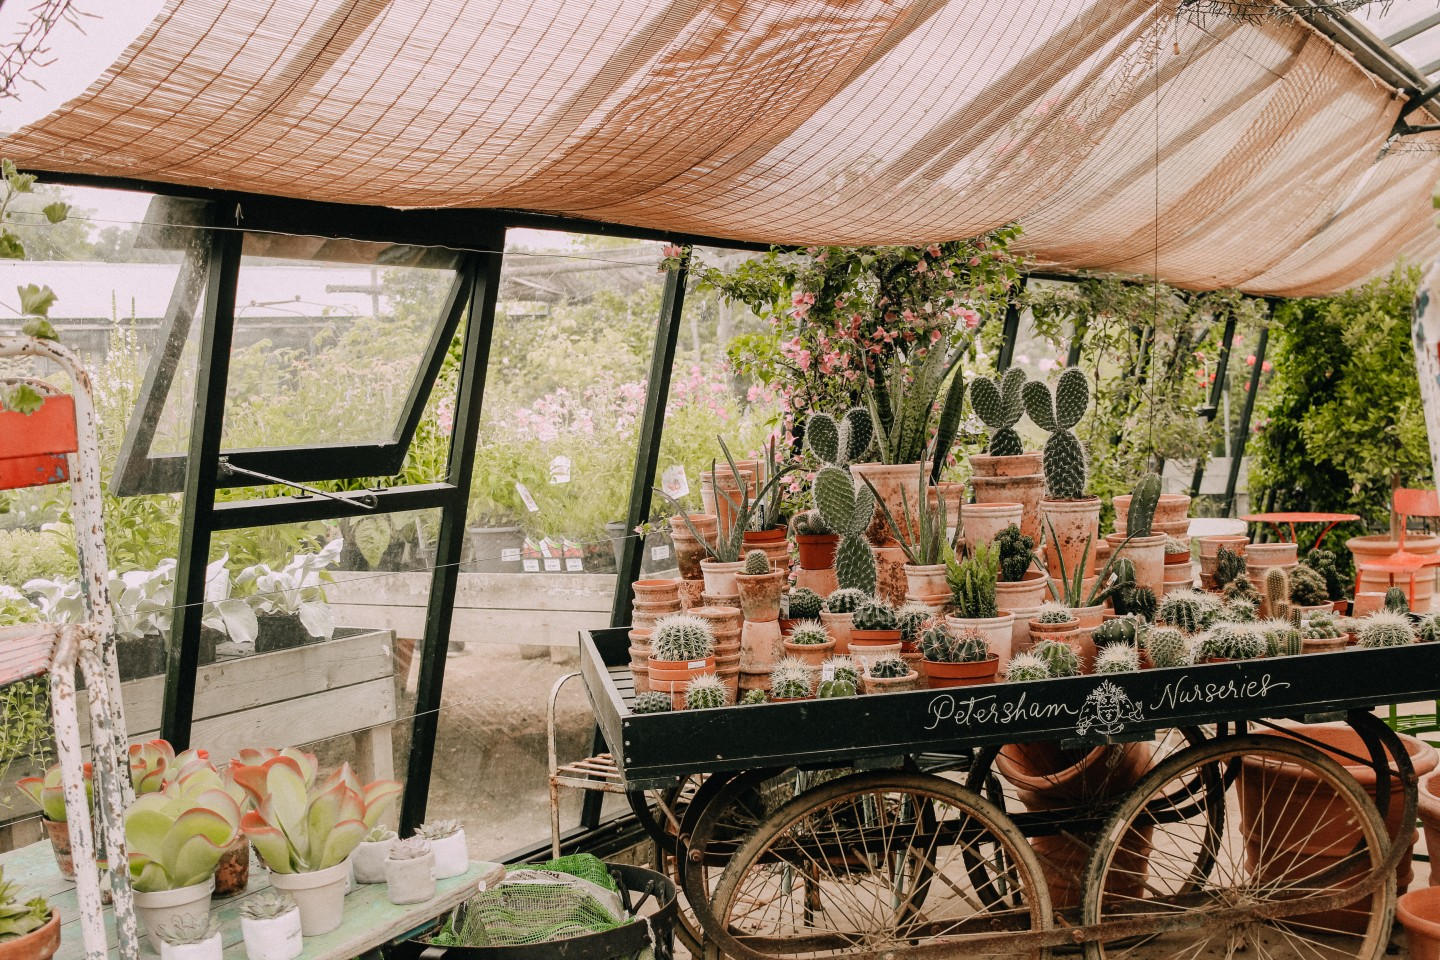 Lifestyle blogger Mollie Moore enjoys an afternoon at Petersham Nurseries in Richmond - Petersham Nurseries featured by popular London travel blogger, Mollie Moore